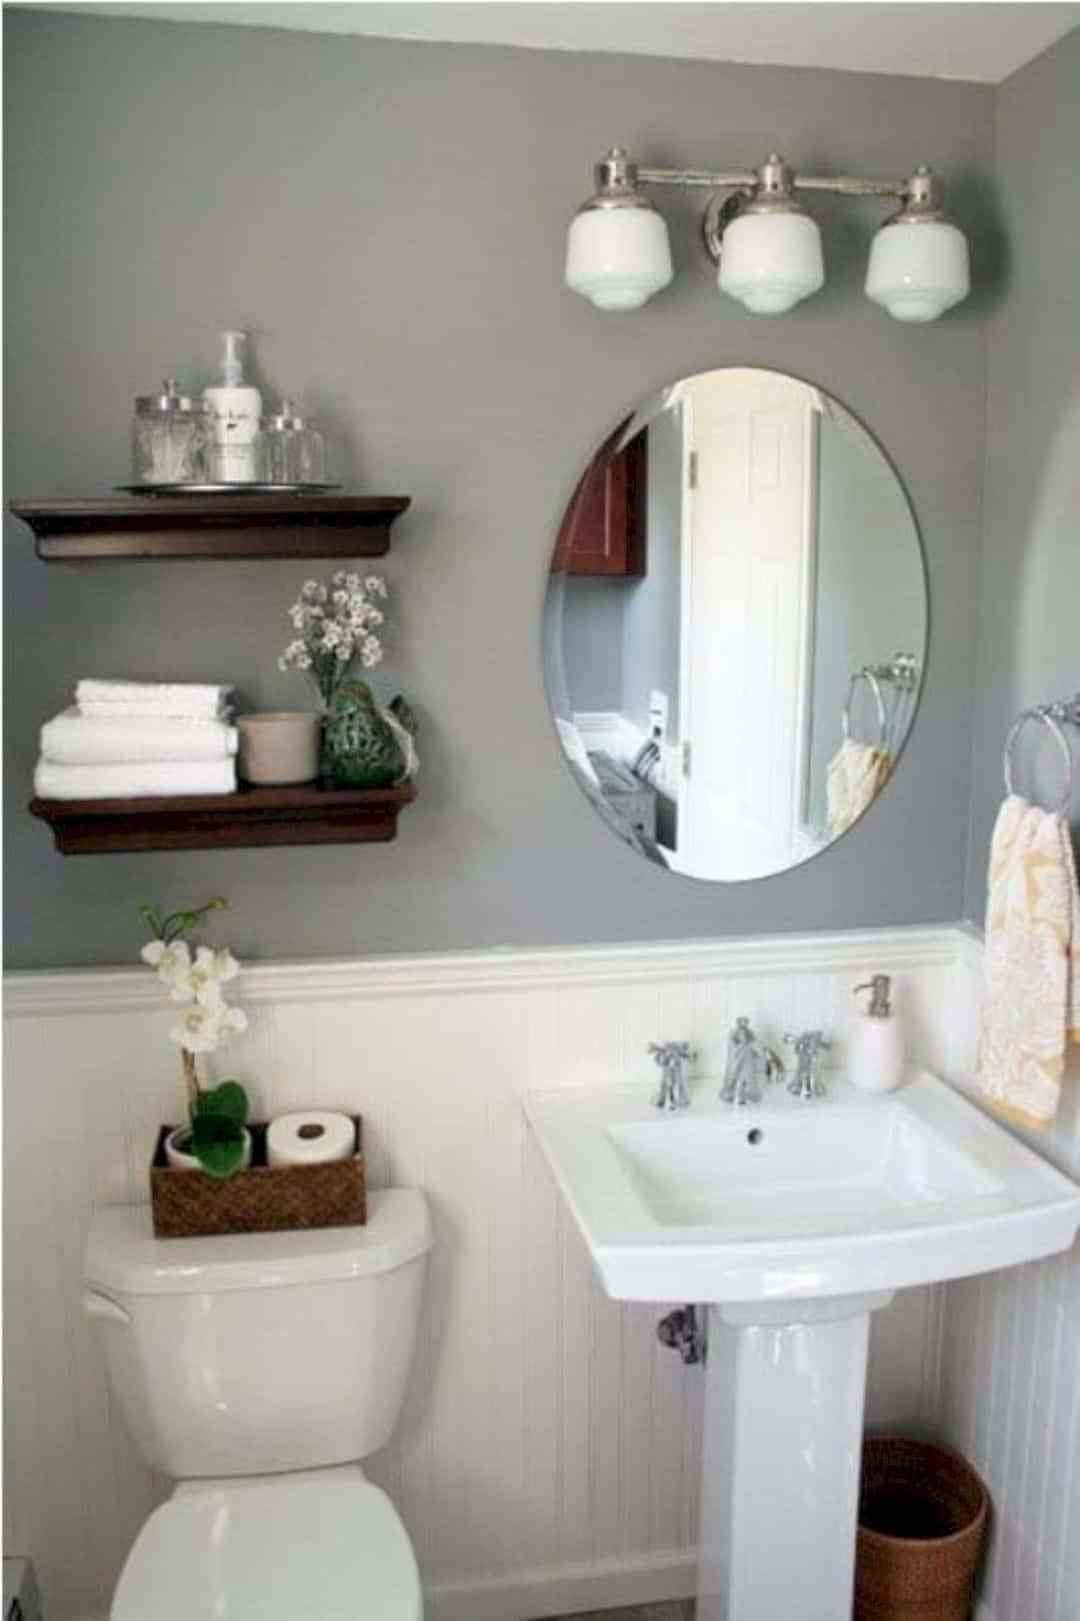 Small Bathroom Decor Ideas Pictures Best Of 17 Awesome Small Bathroom Decorating Ideas Futurist Architecture